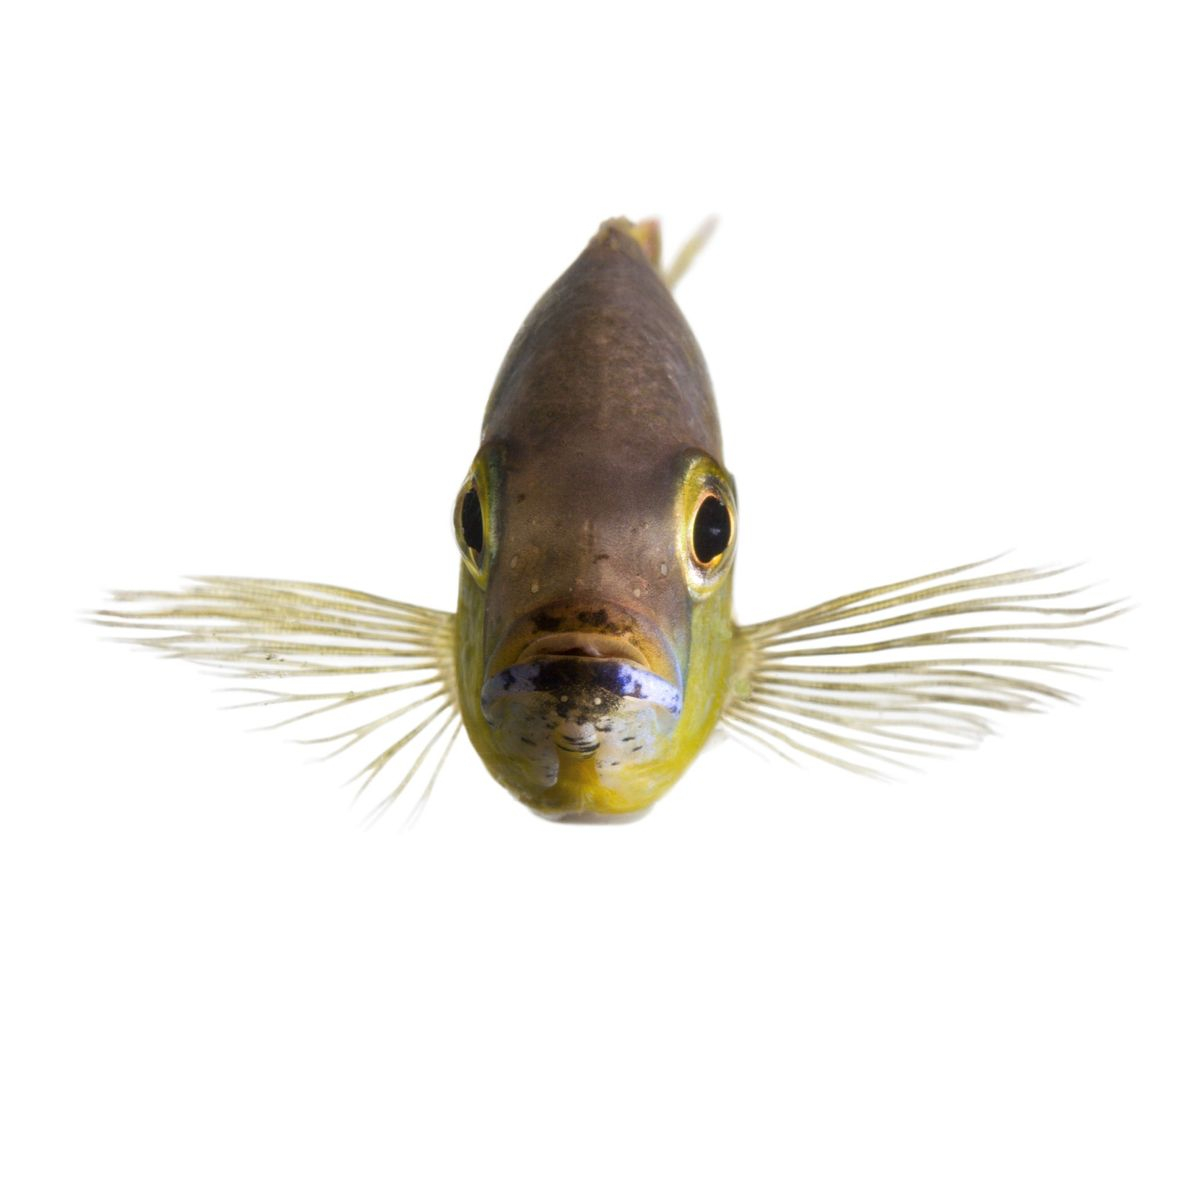 Some African cichlid fish, native to Lake Tanganyika in East Africa, are able to distinguish familiar ...